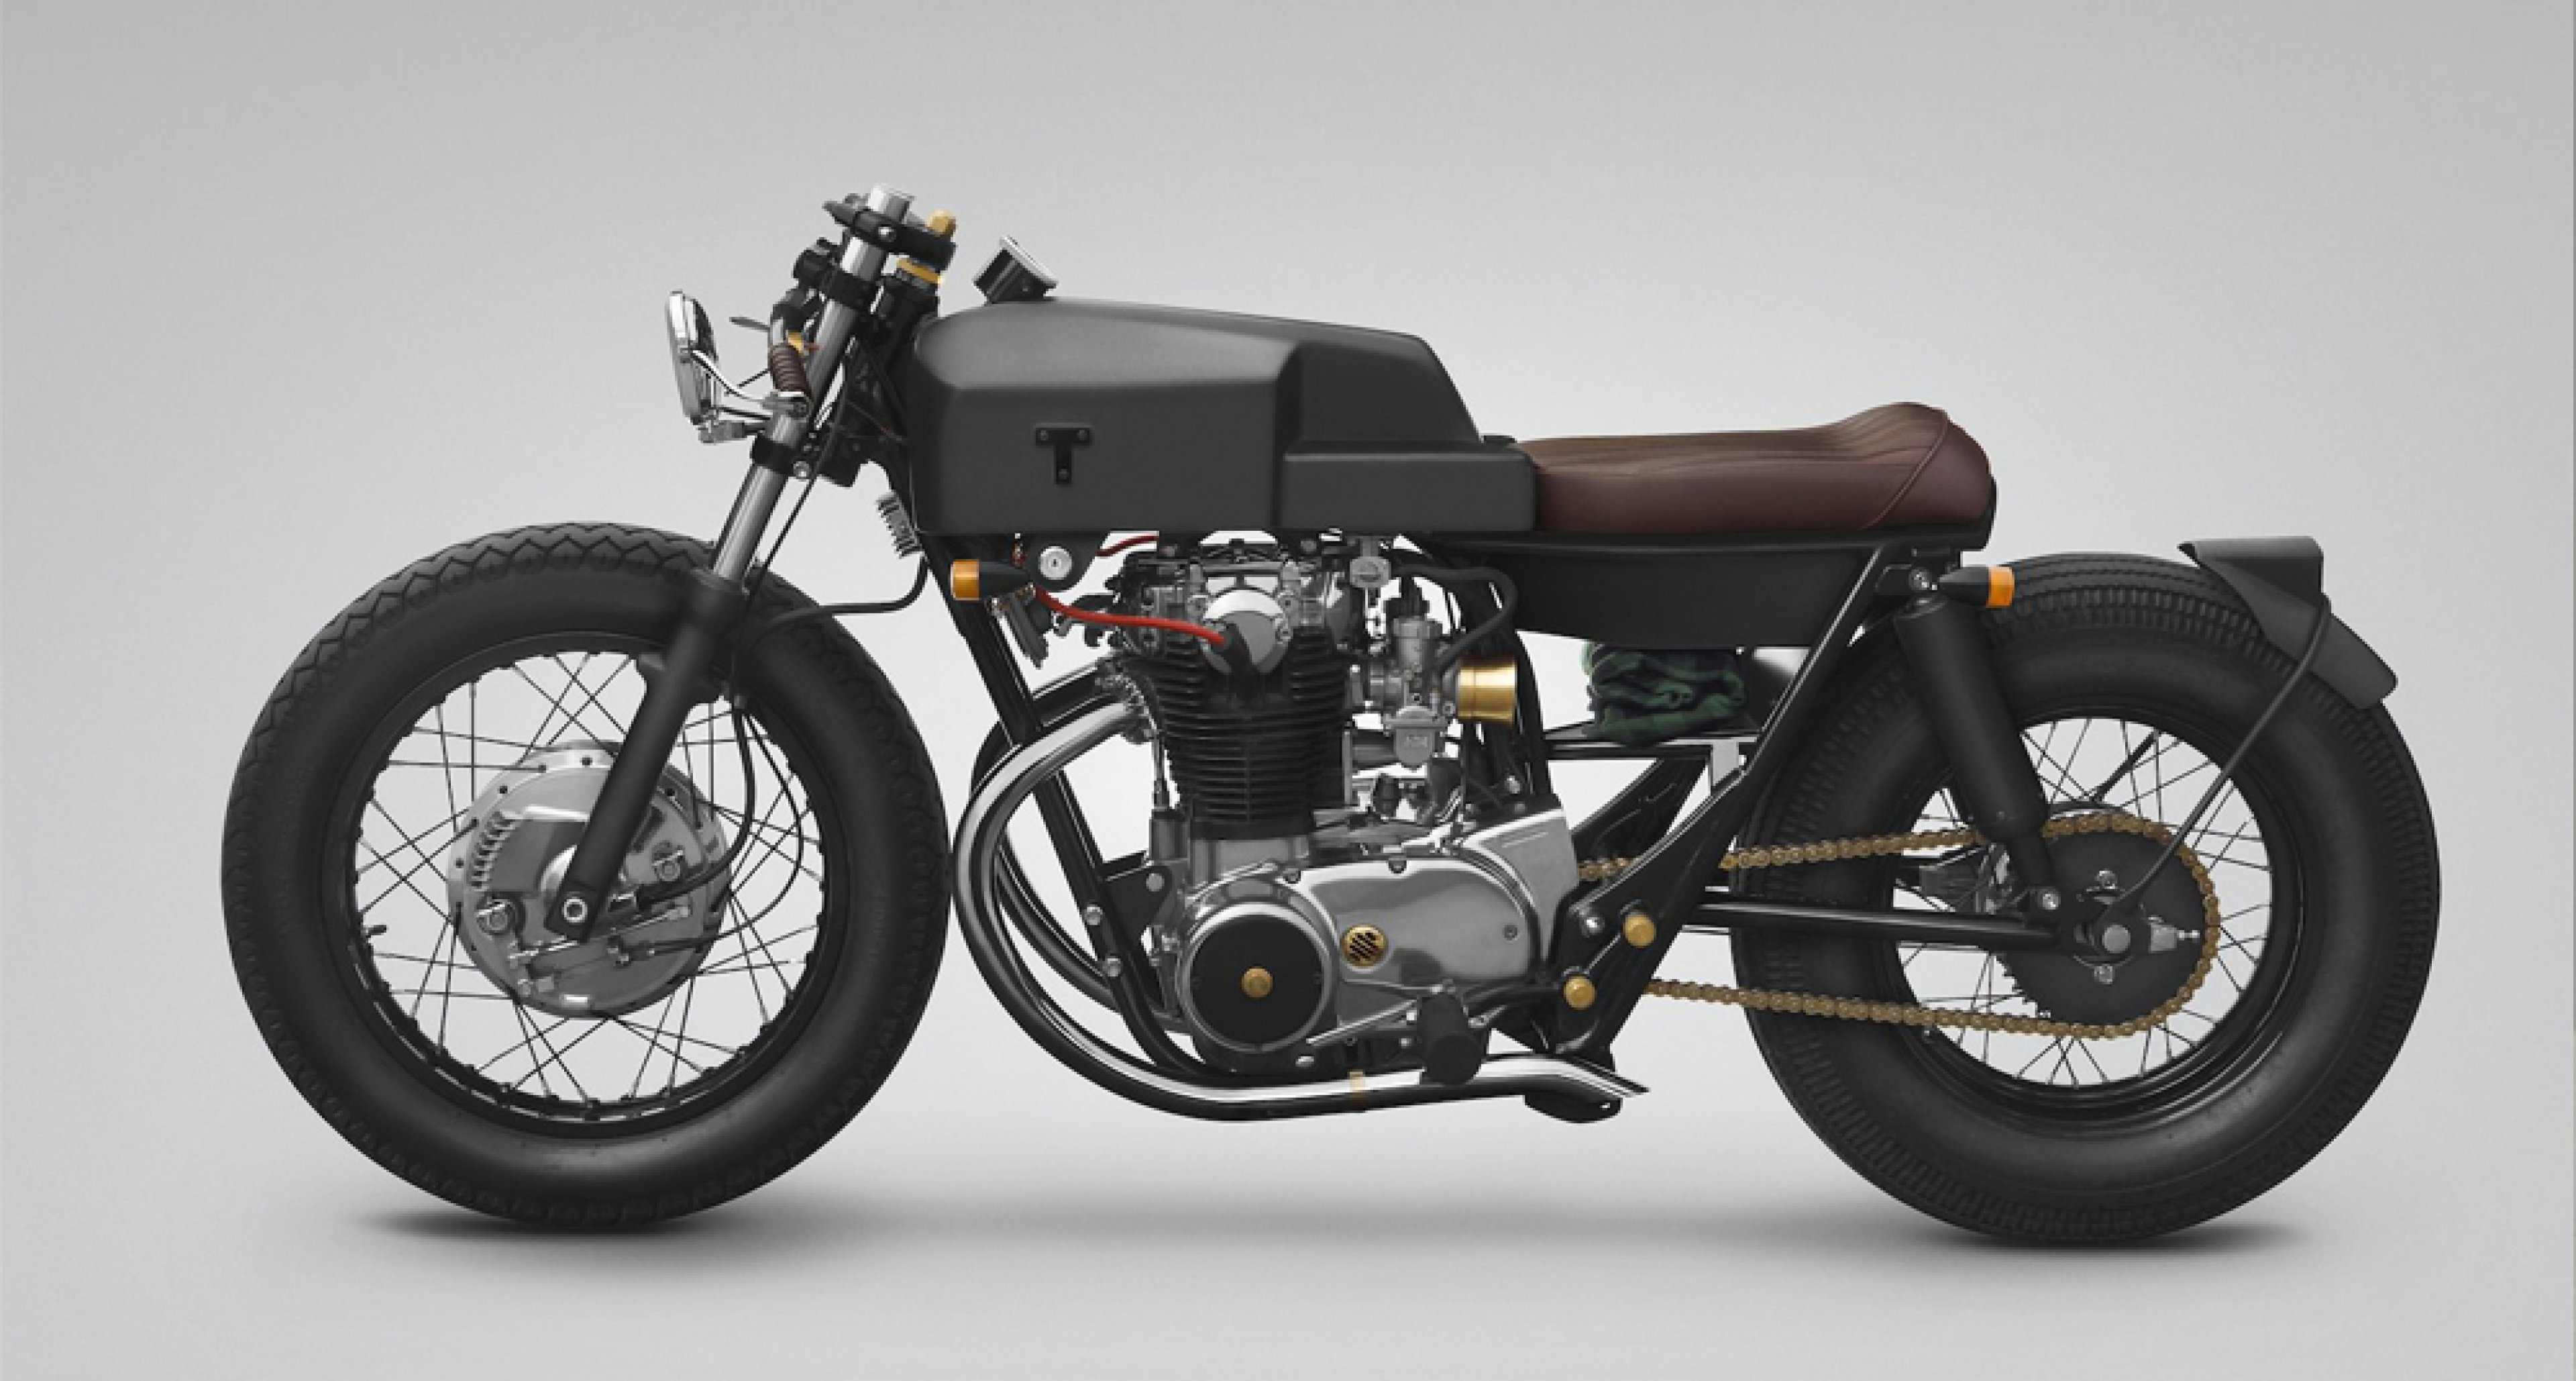 Stoke The Fire Yamaha Xs650 By Thrive Motorcycles Classic